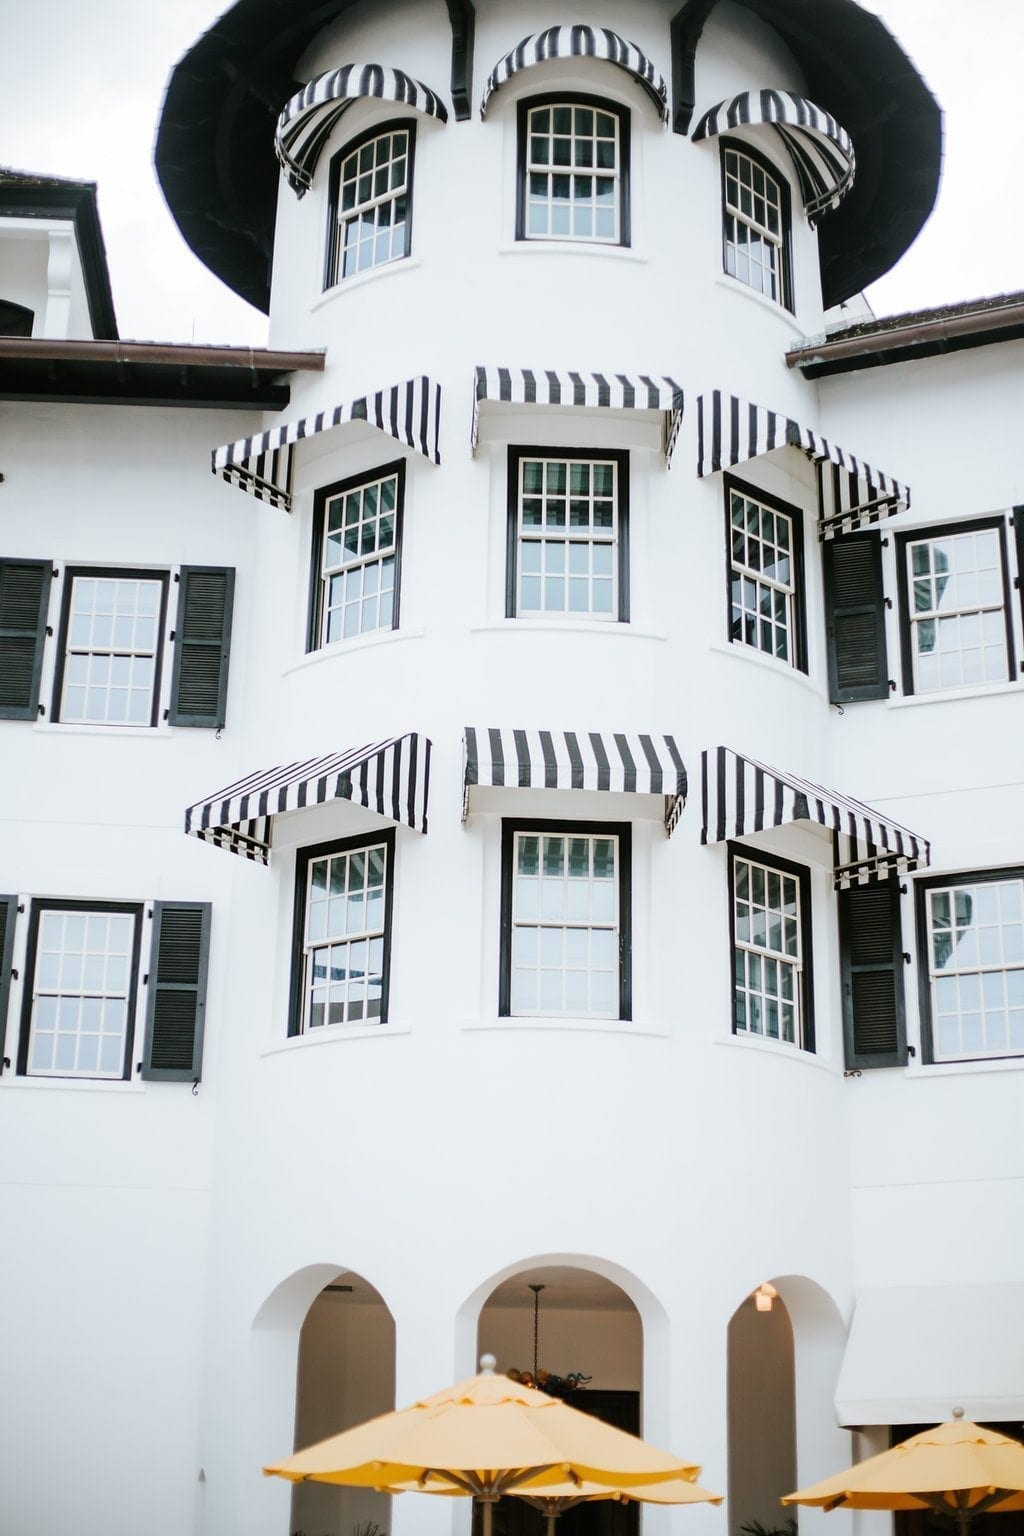 The Pearl hotel in Rosemary Beach is pure eye candy. This boutique hotel is a fantastic place to take family photos in Destin. I love the black and white awning accents with yellow outdoor umbrellas. Outdoor decor and outdoor design at it's finest!